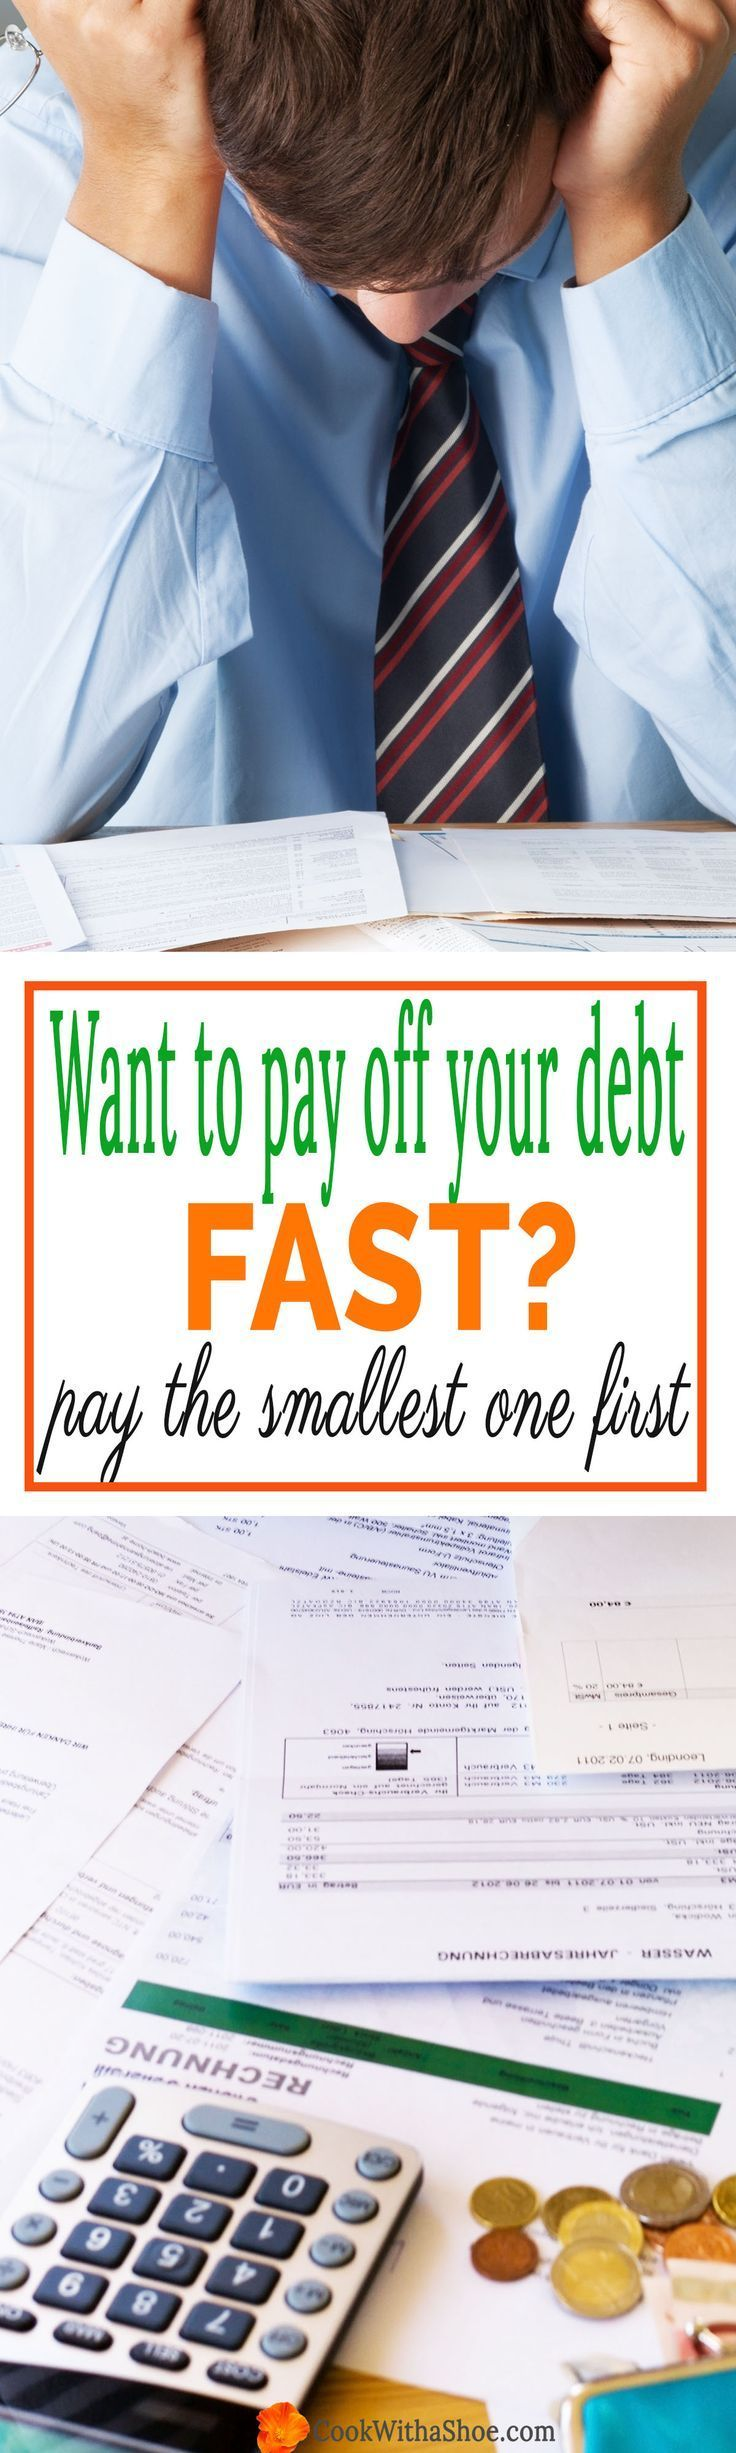 Which Debt Should I Pay Off First Debt Payoff Paying Off Credit Cards Debt